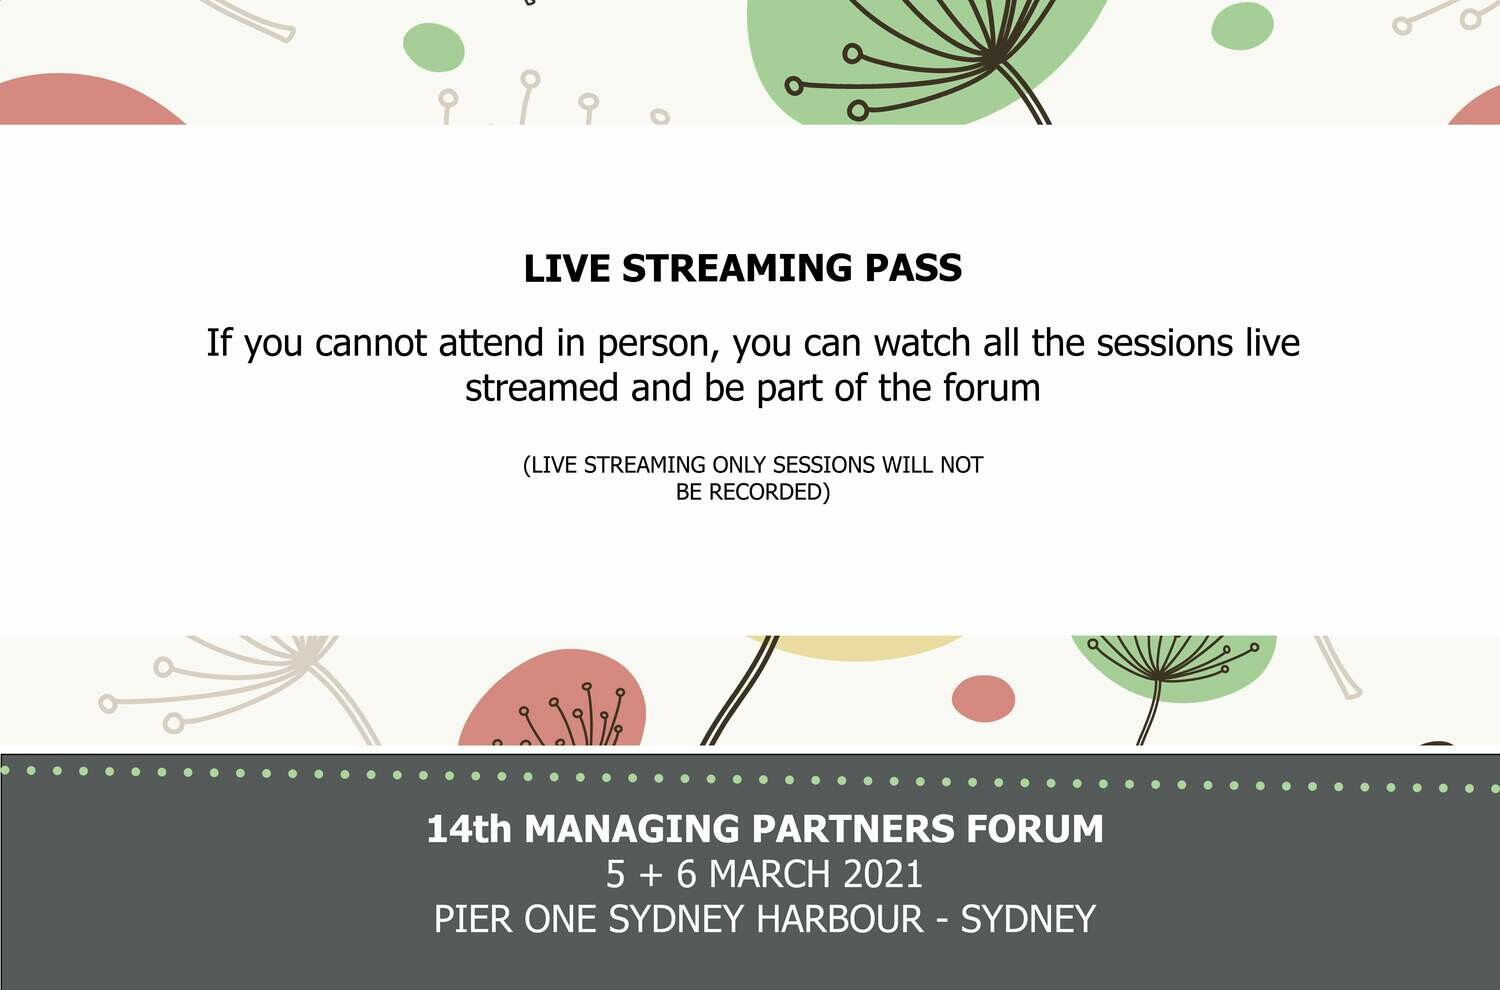 14th MANAGING PARTNERS FORUM  LIVE STREAMING PASS